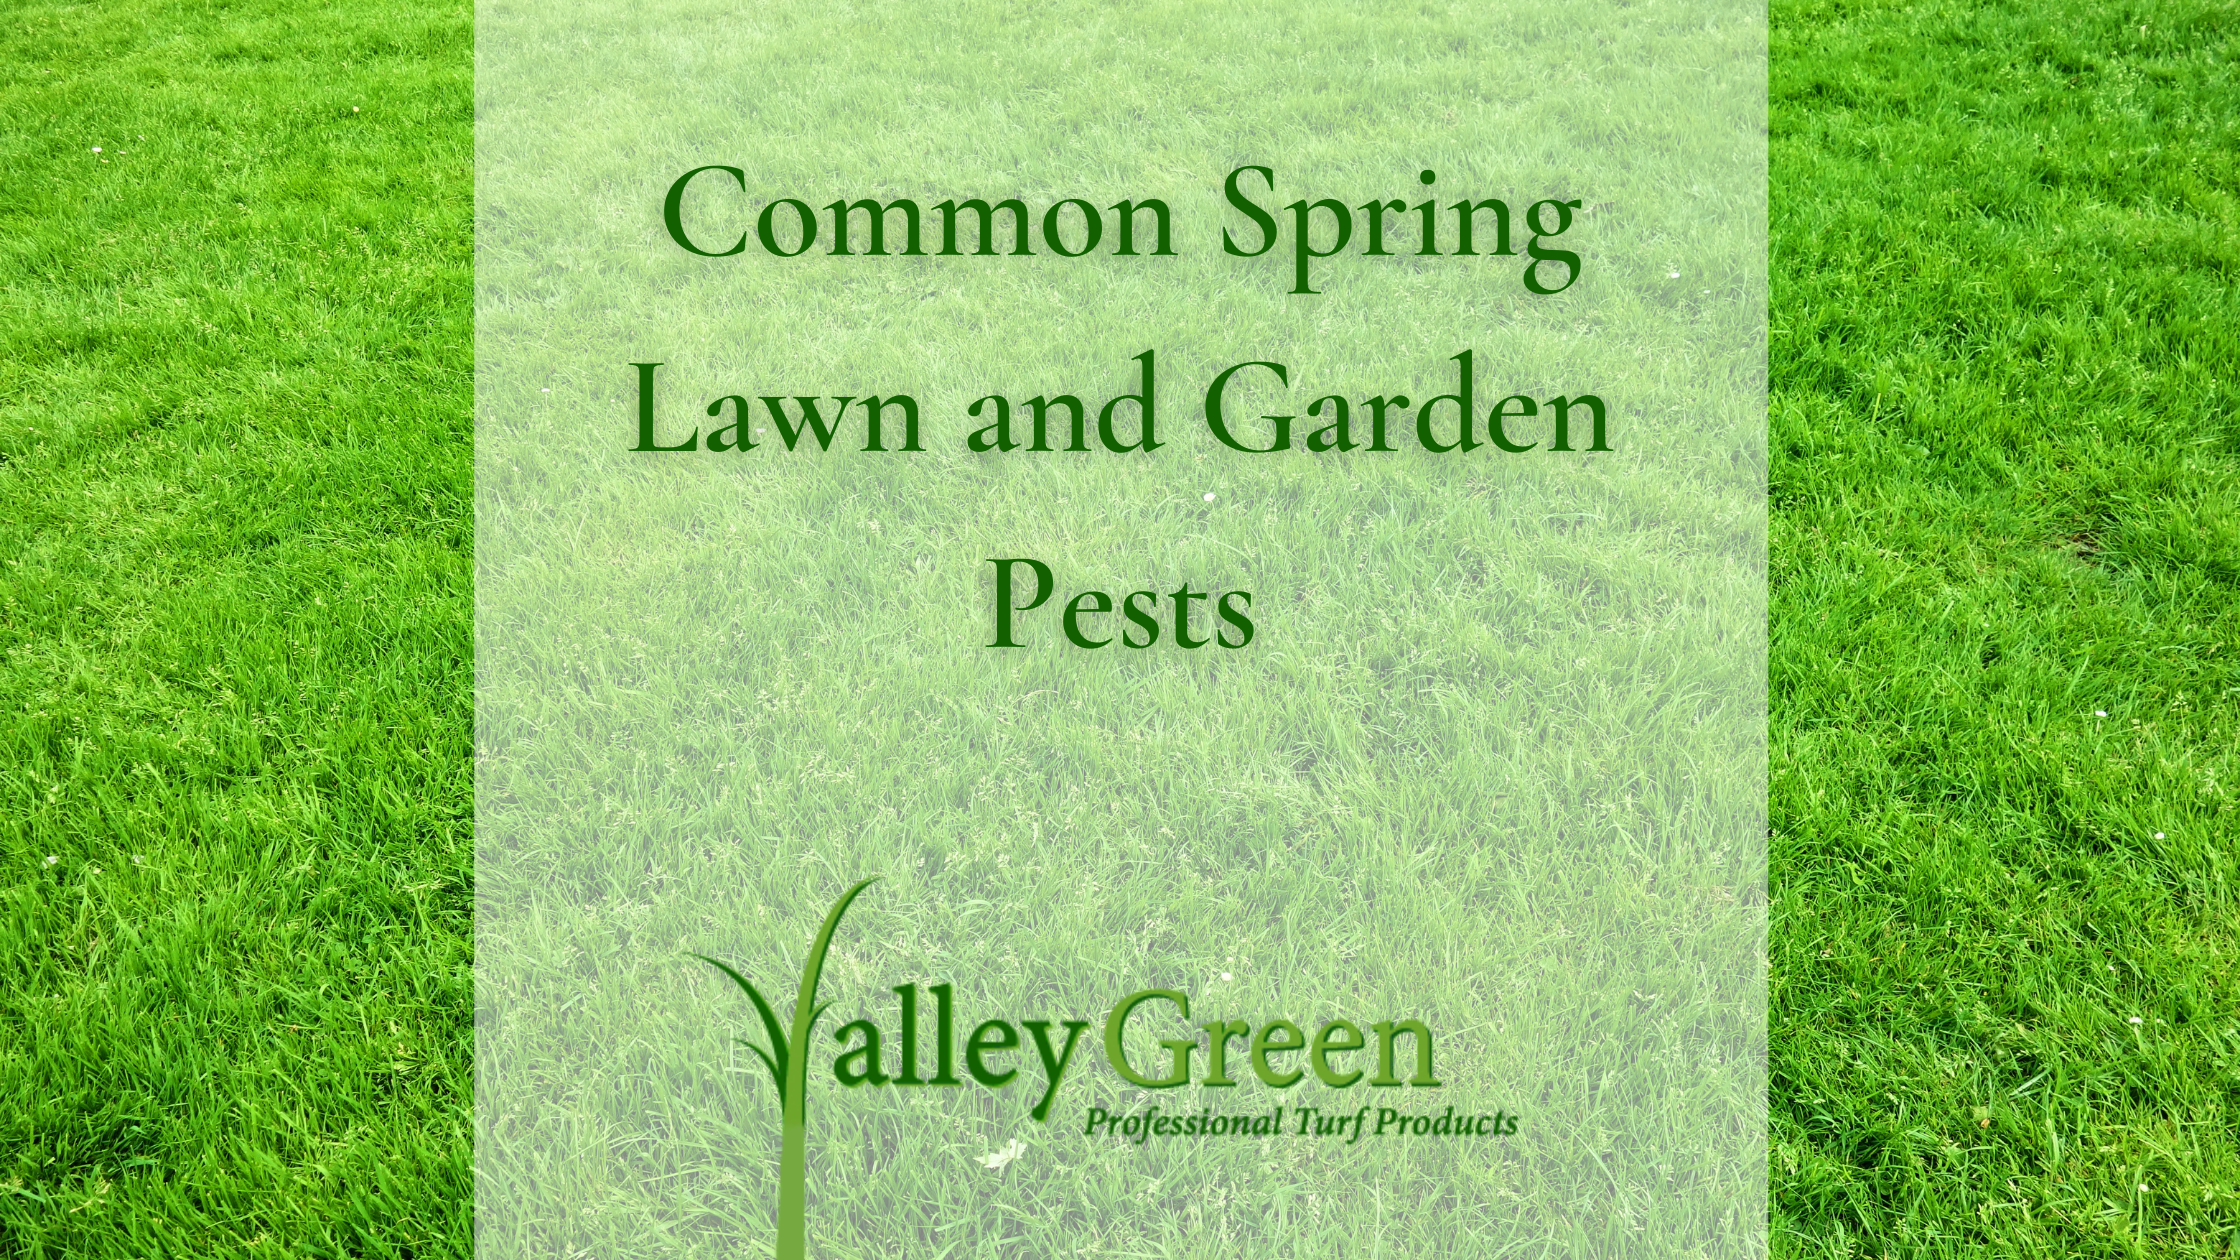 Common Spring Lawn and Garden Pests